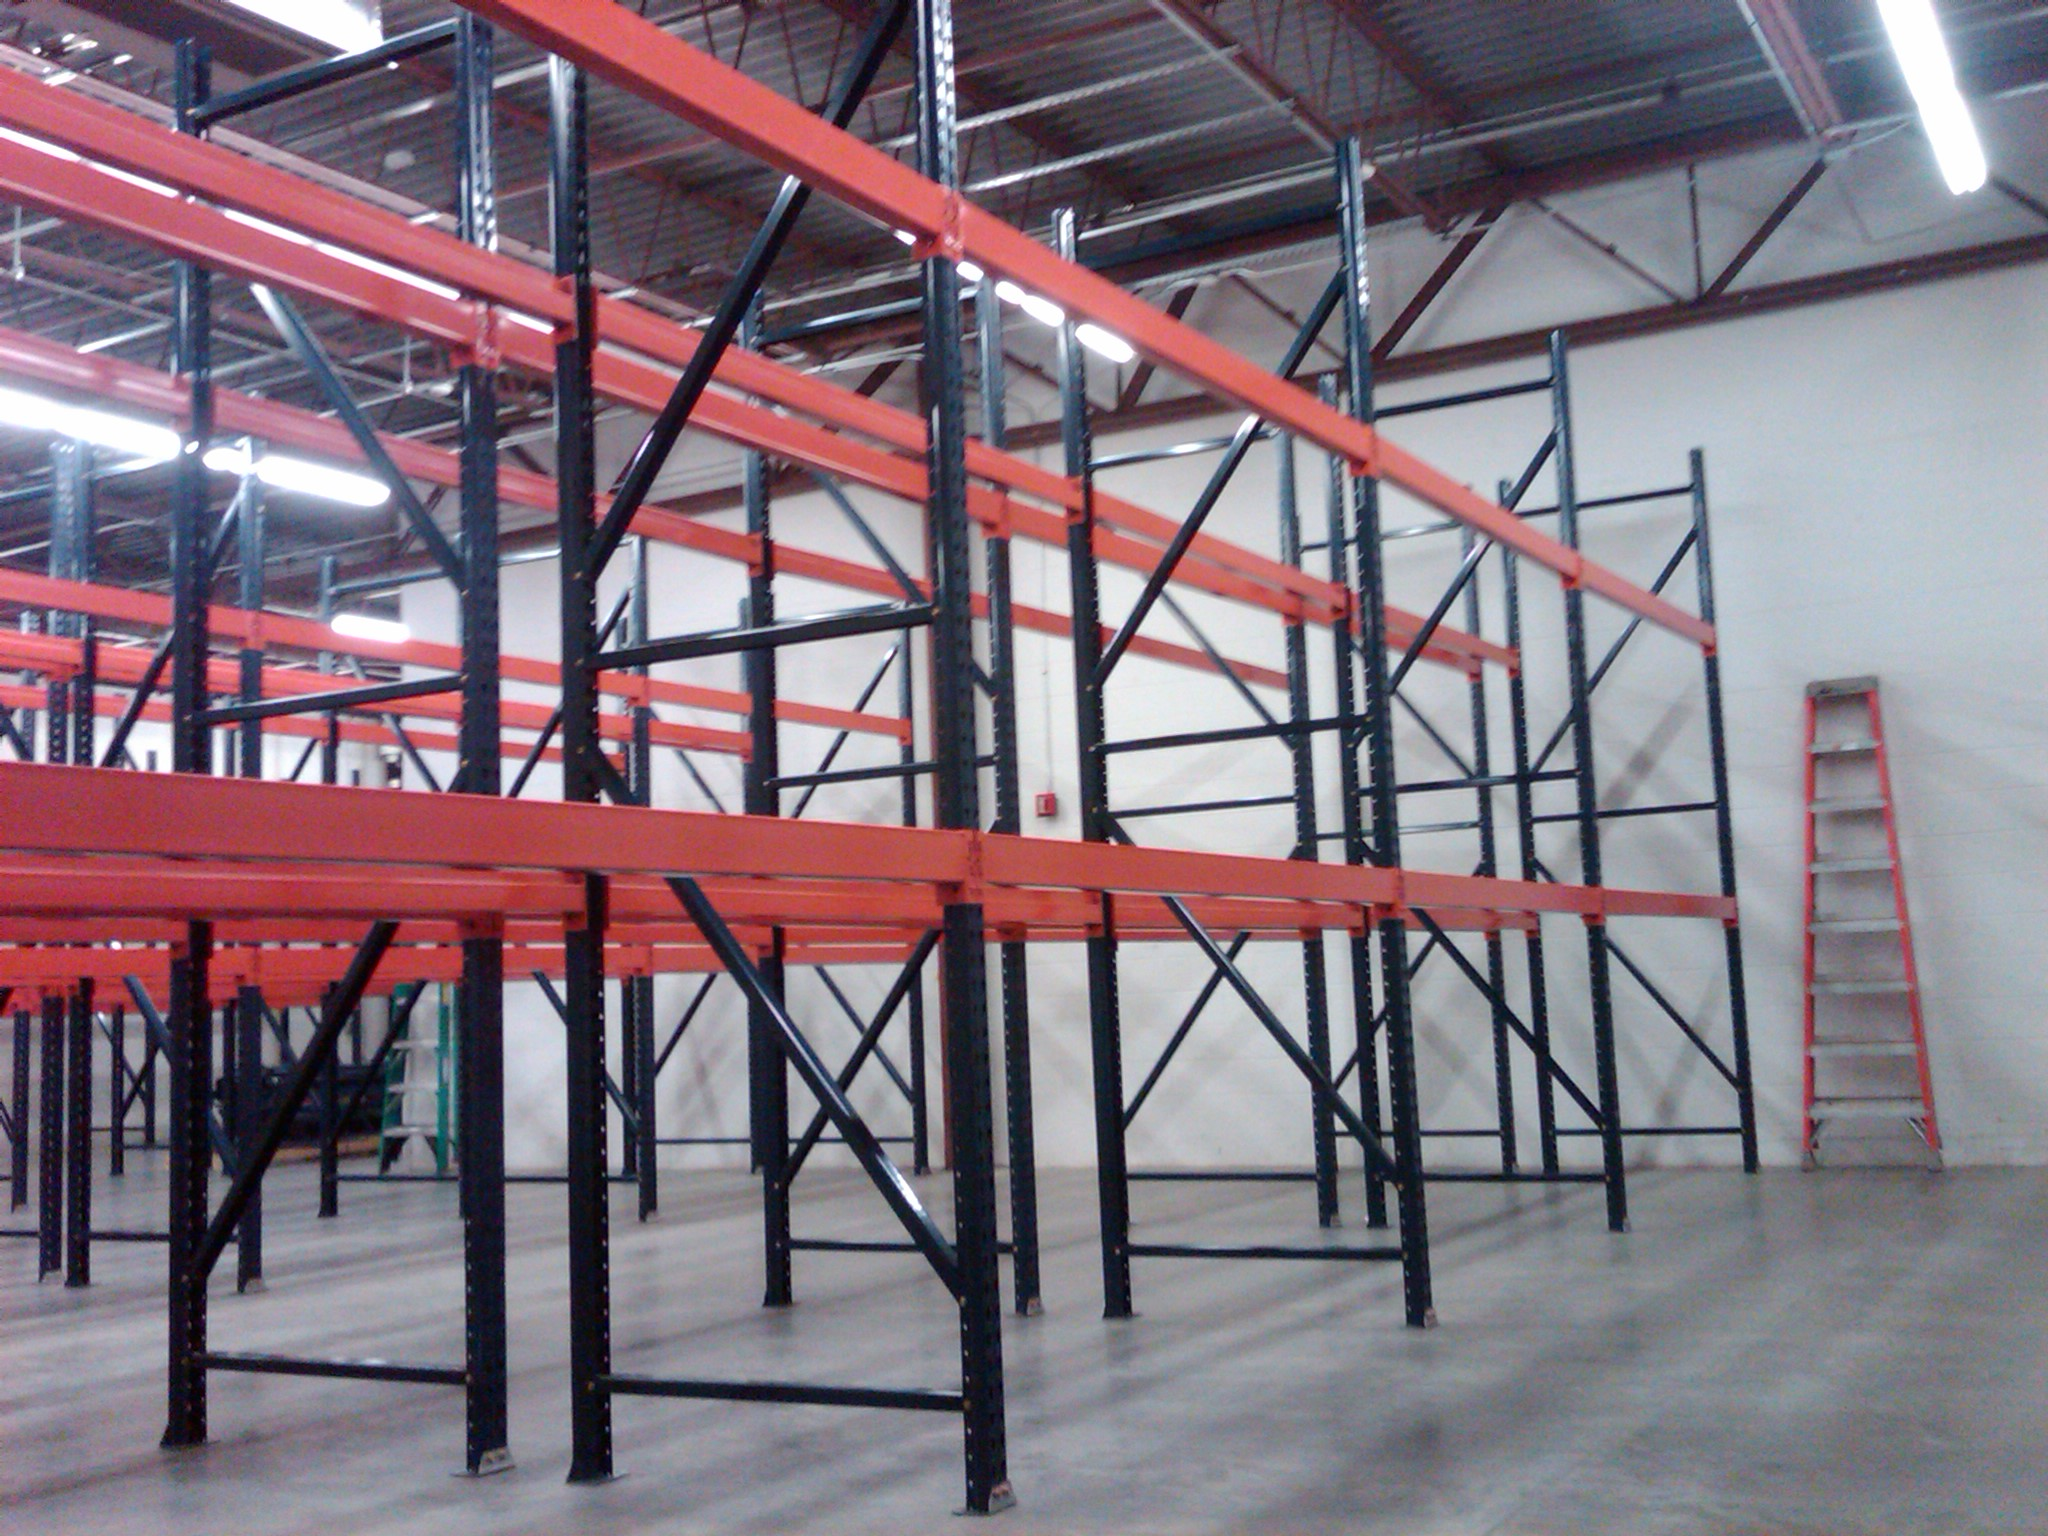 suppllier system strong warehouse wrehouse buy fifo pallet drive ce product layout detail steel and loading rack in factory lumber storage